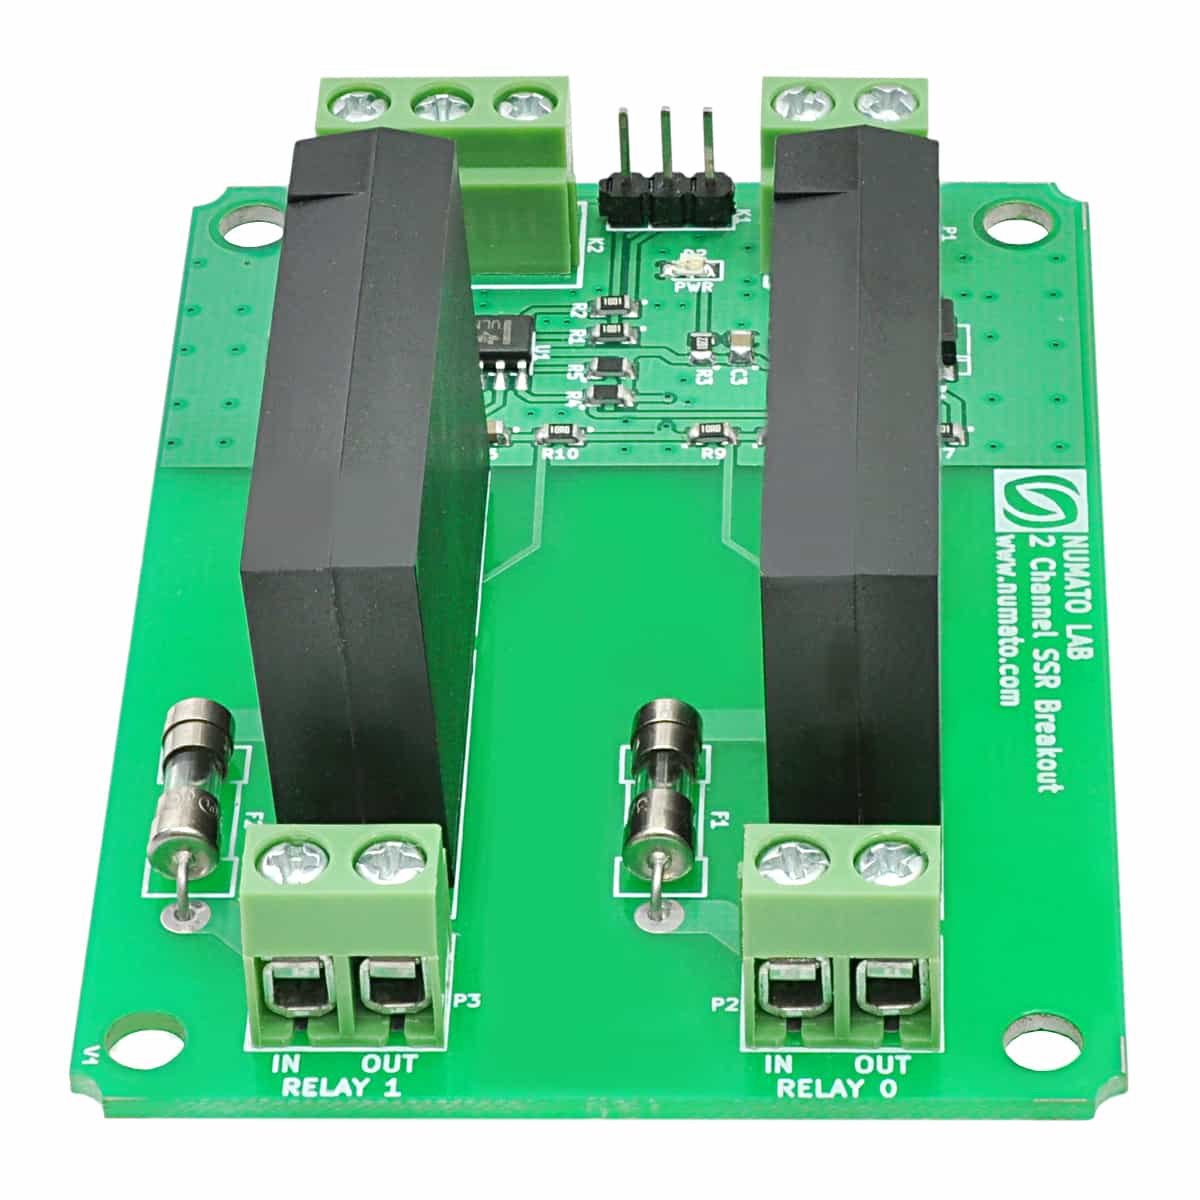 2 Channel Solid State Relay Controller Board Numato Lab In A Ssr The Circuit Is Not Everything Pcb Engineering